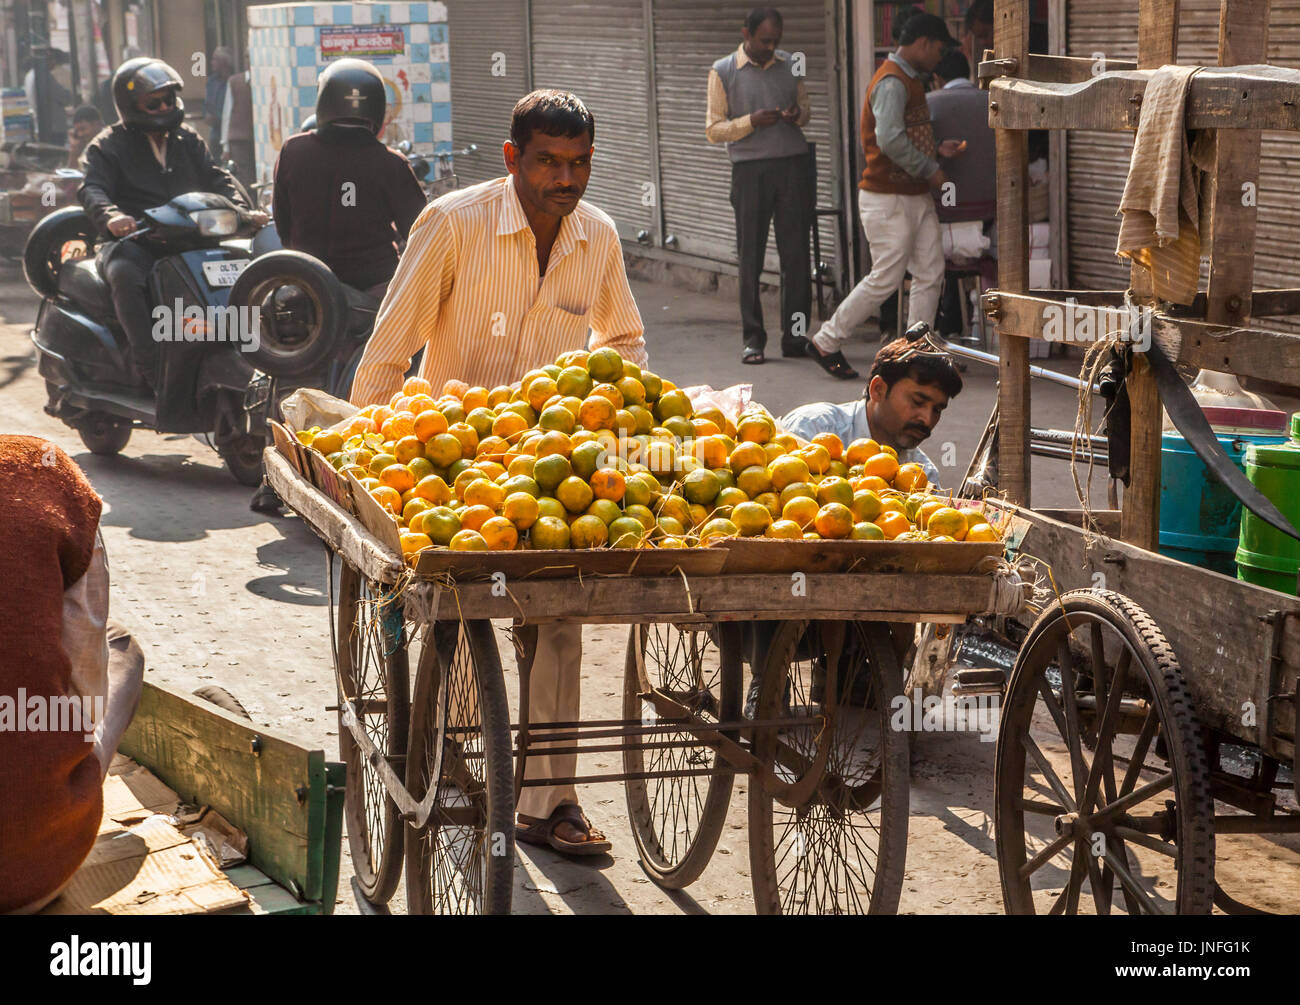 A man in the street pushing his cart of peeled and unpeeled oranges, Chandni Chowk, Old Delhi, India. - Stock Image